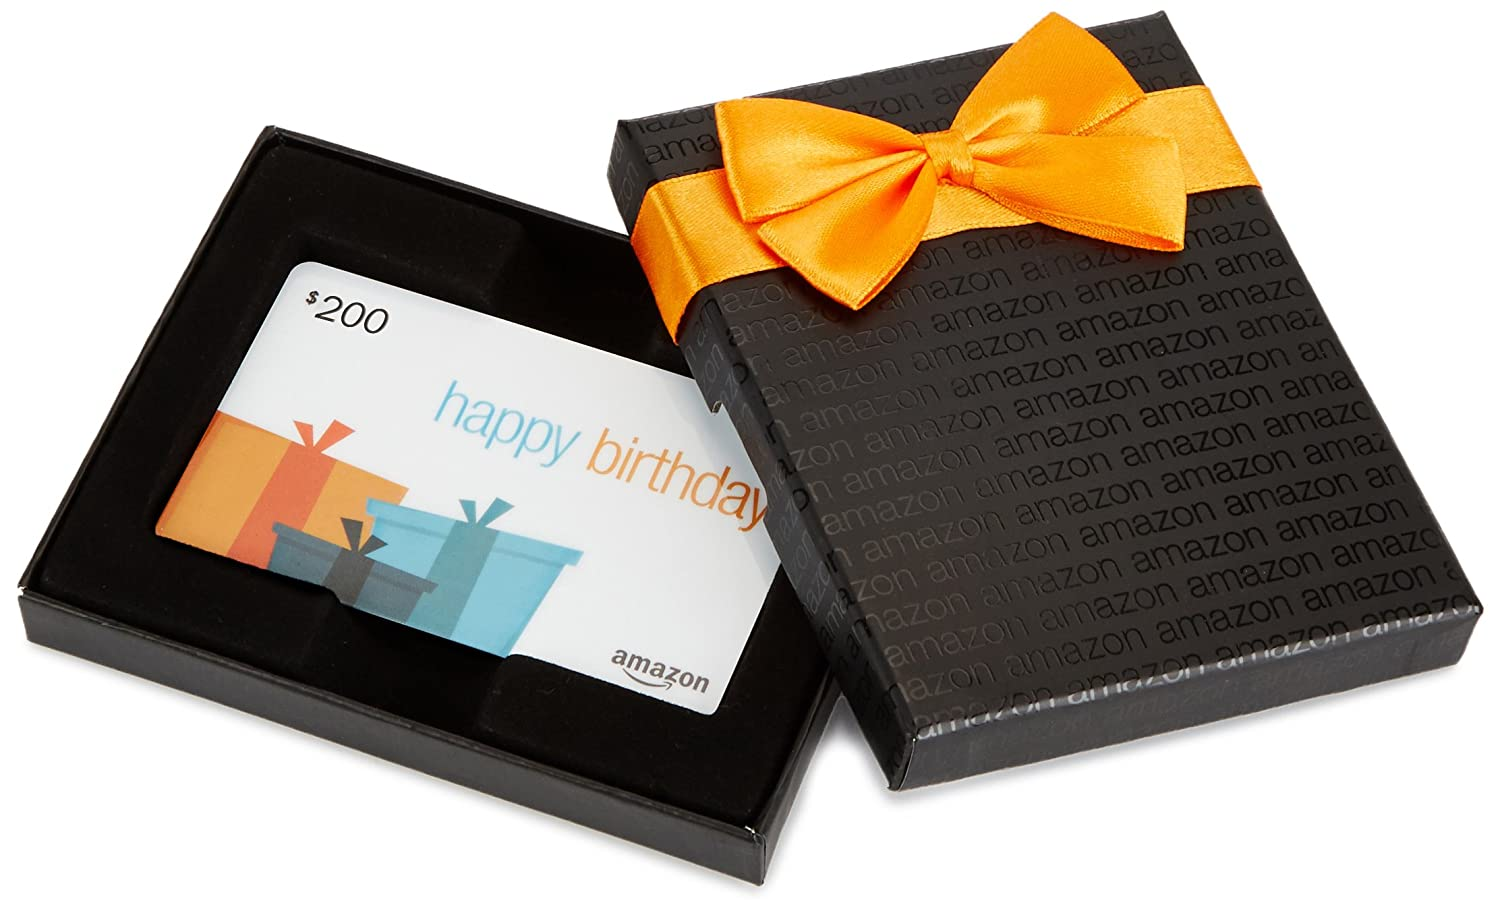 Amazon.com Gift Card in a Black Gift Box (Happy Birthday Card Design)